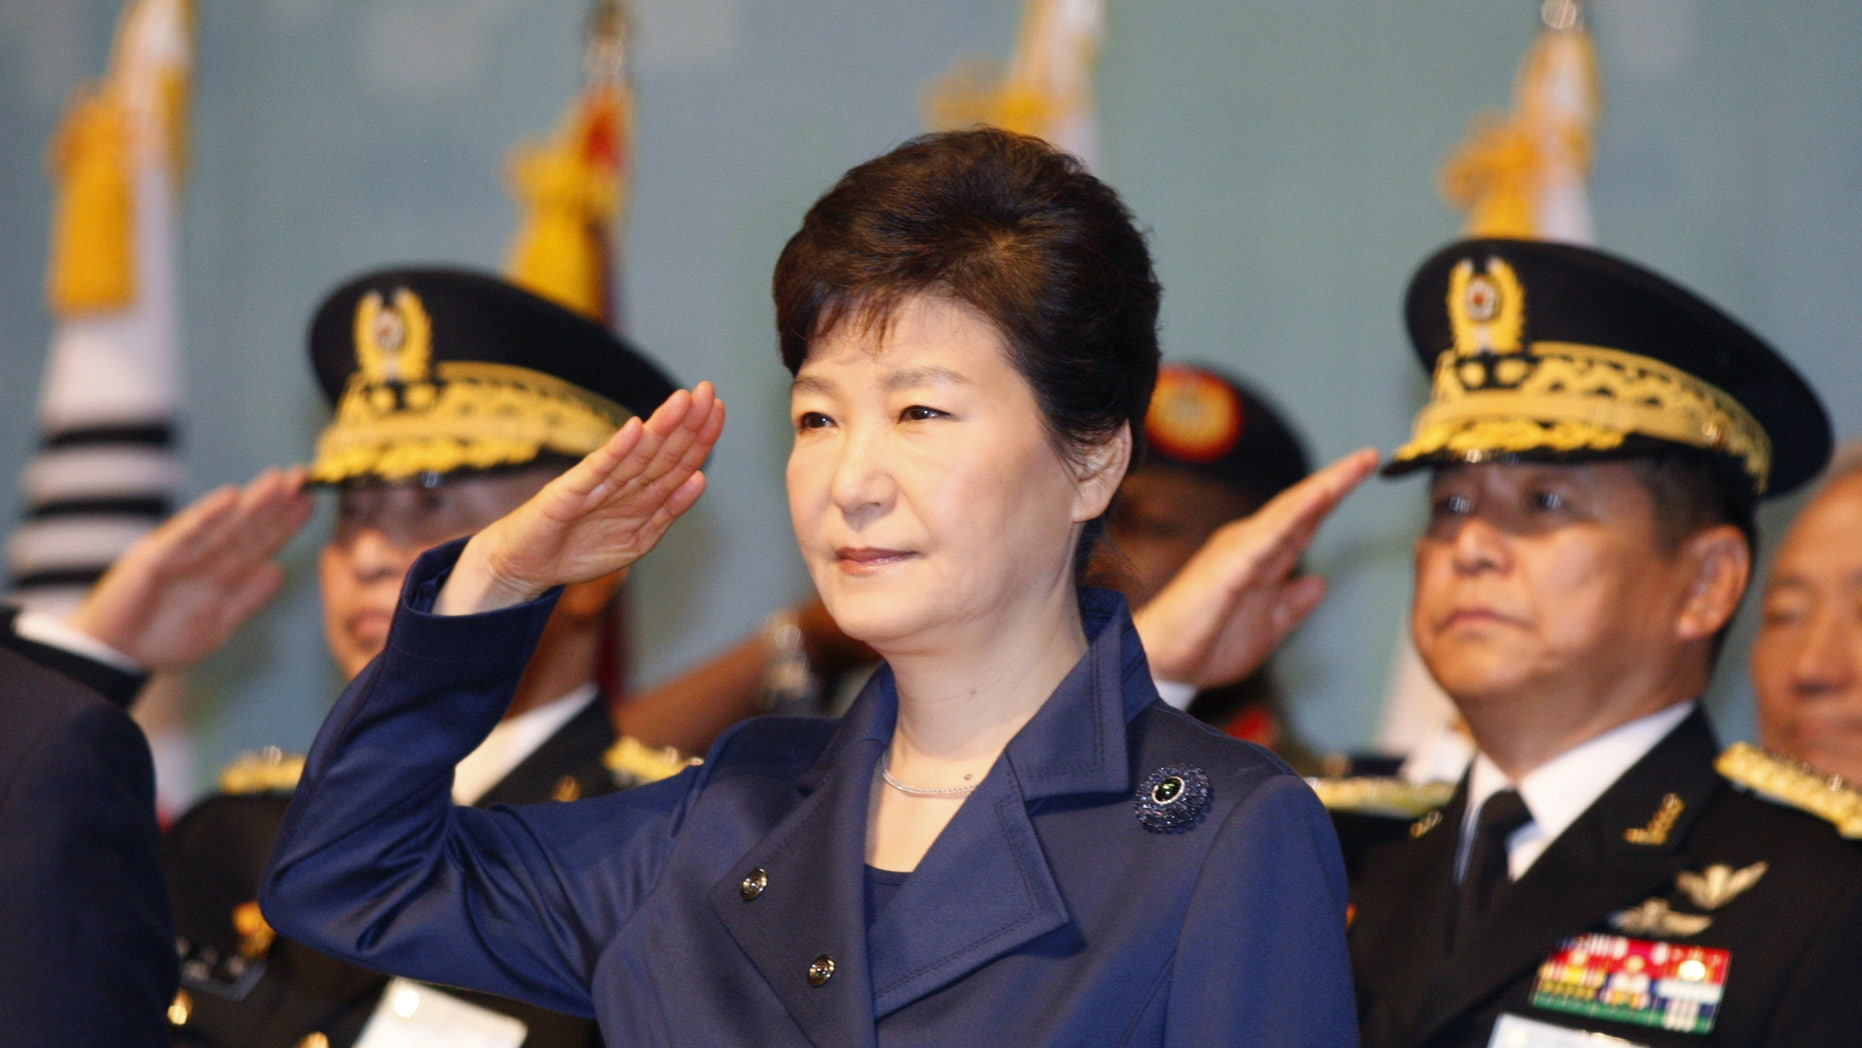 South Korean President Park Geun-hye, center, gives a salute during the 67th Armed Forces Day at Gyeryongdae, South Korea's main compound in Gyeryong City, South Korea, Oct. 1, 2015. (Kim Hee-chul/Pool Photo via AP)